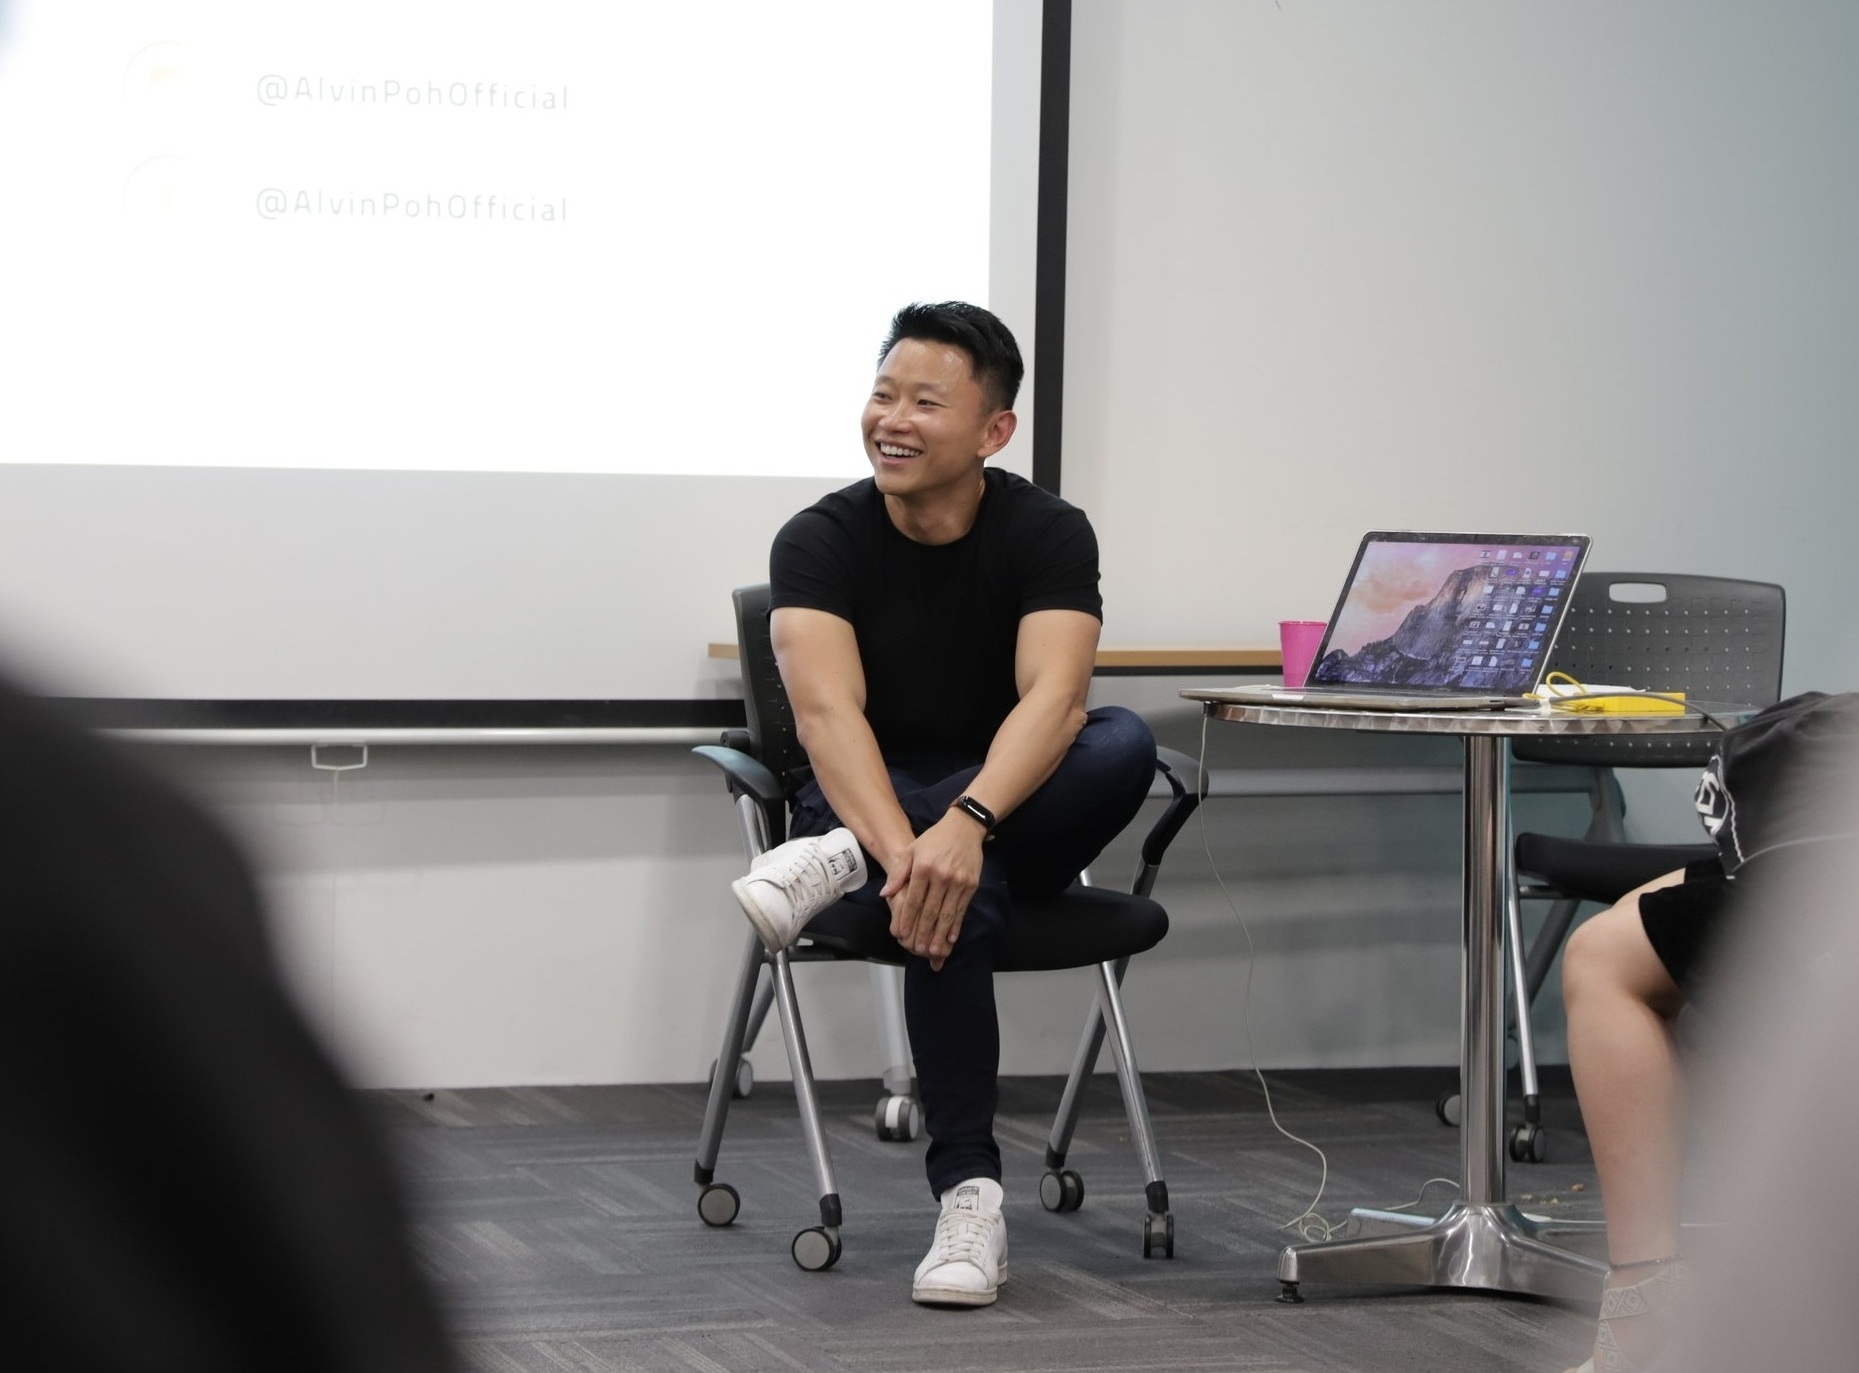 NewYork.SG's technology chief shares his latest pursuit to empower Singapore's youth - JUL 7, 2019